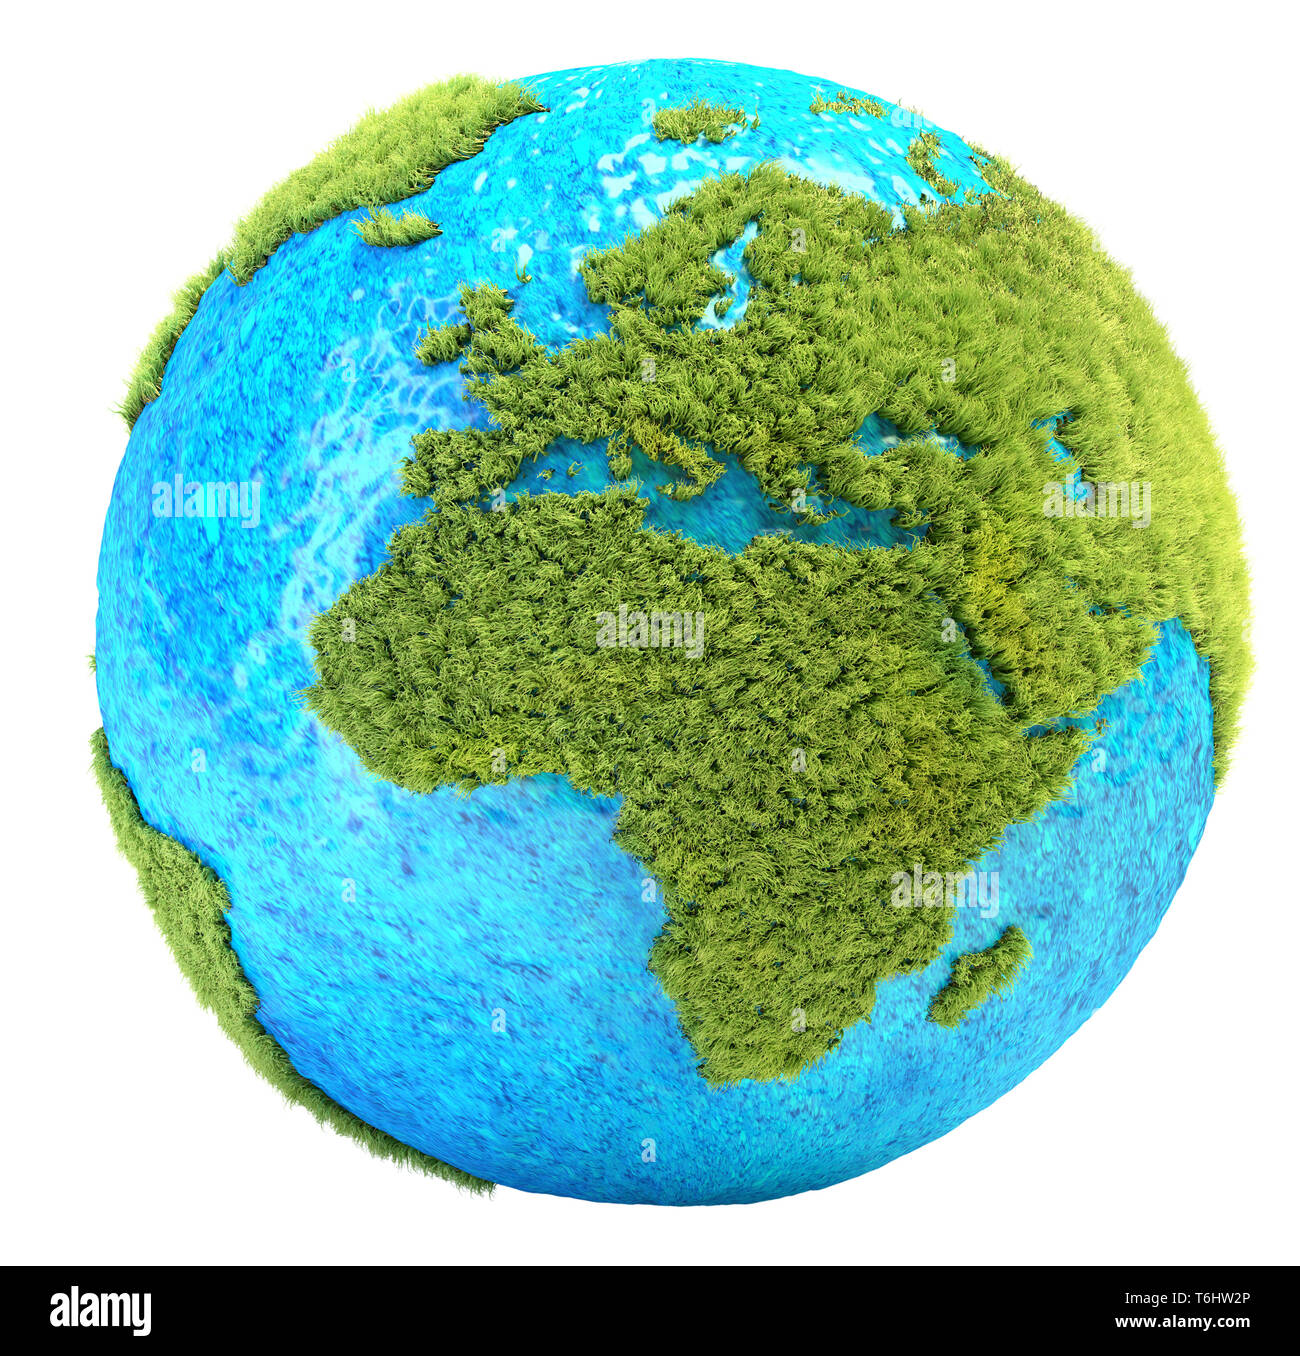 grass Earth - Stock Image